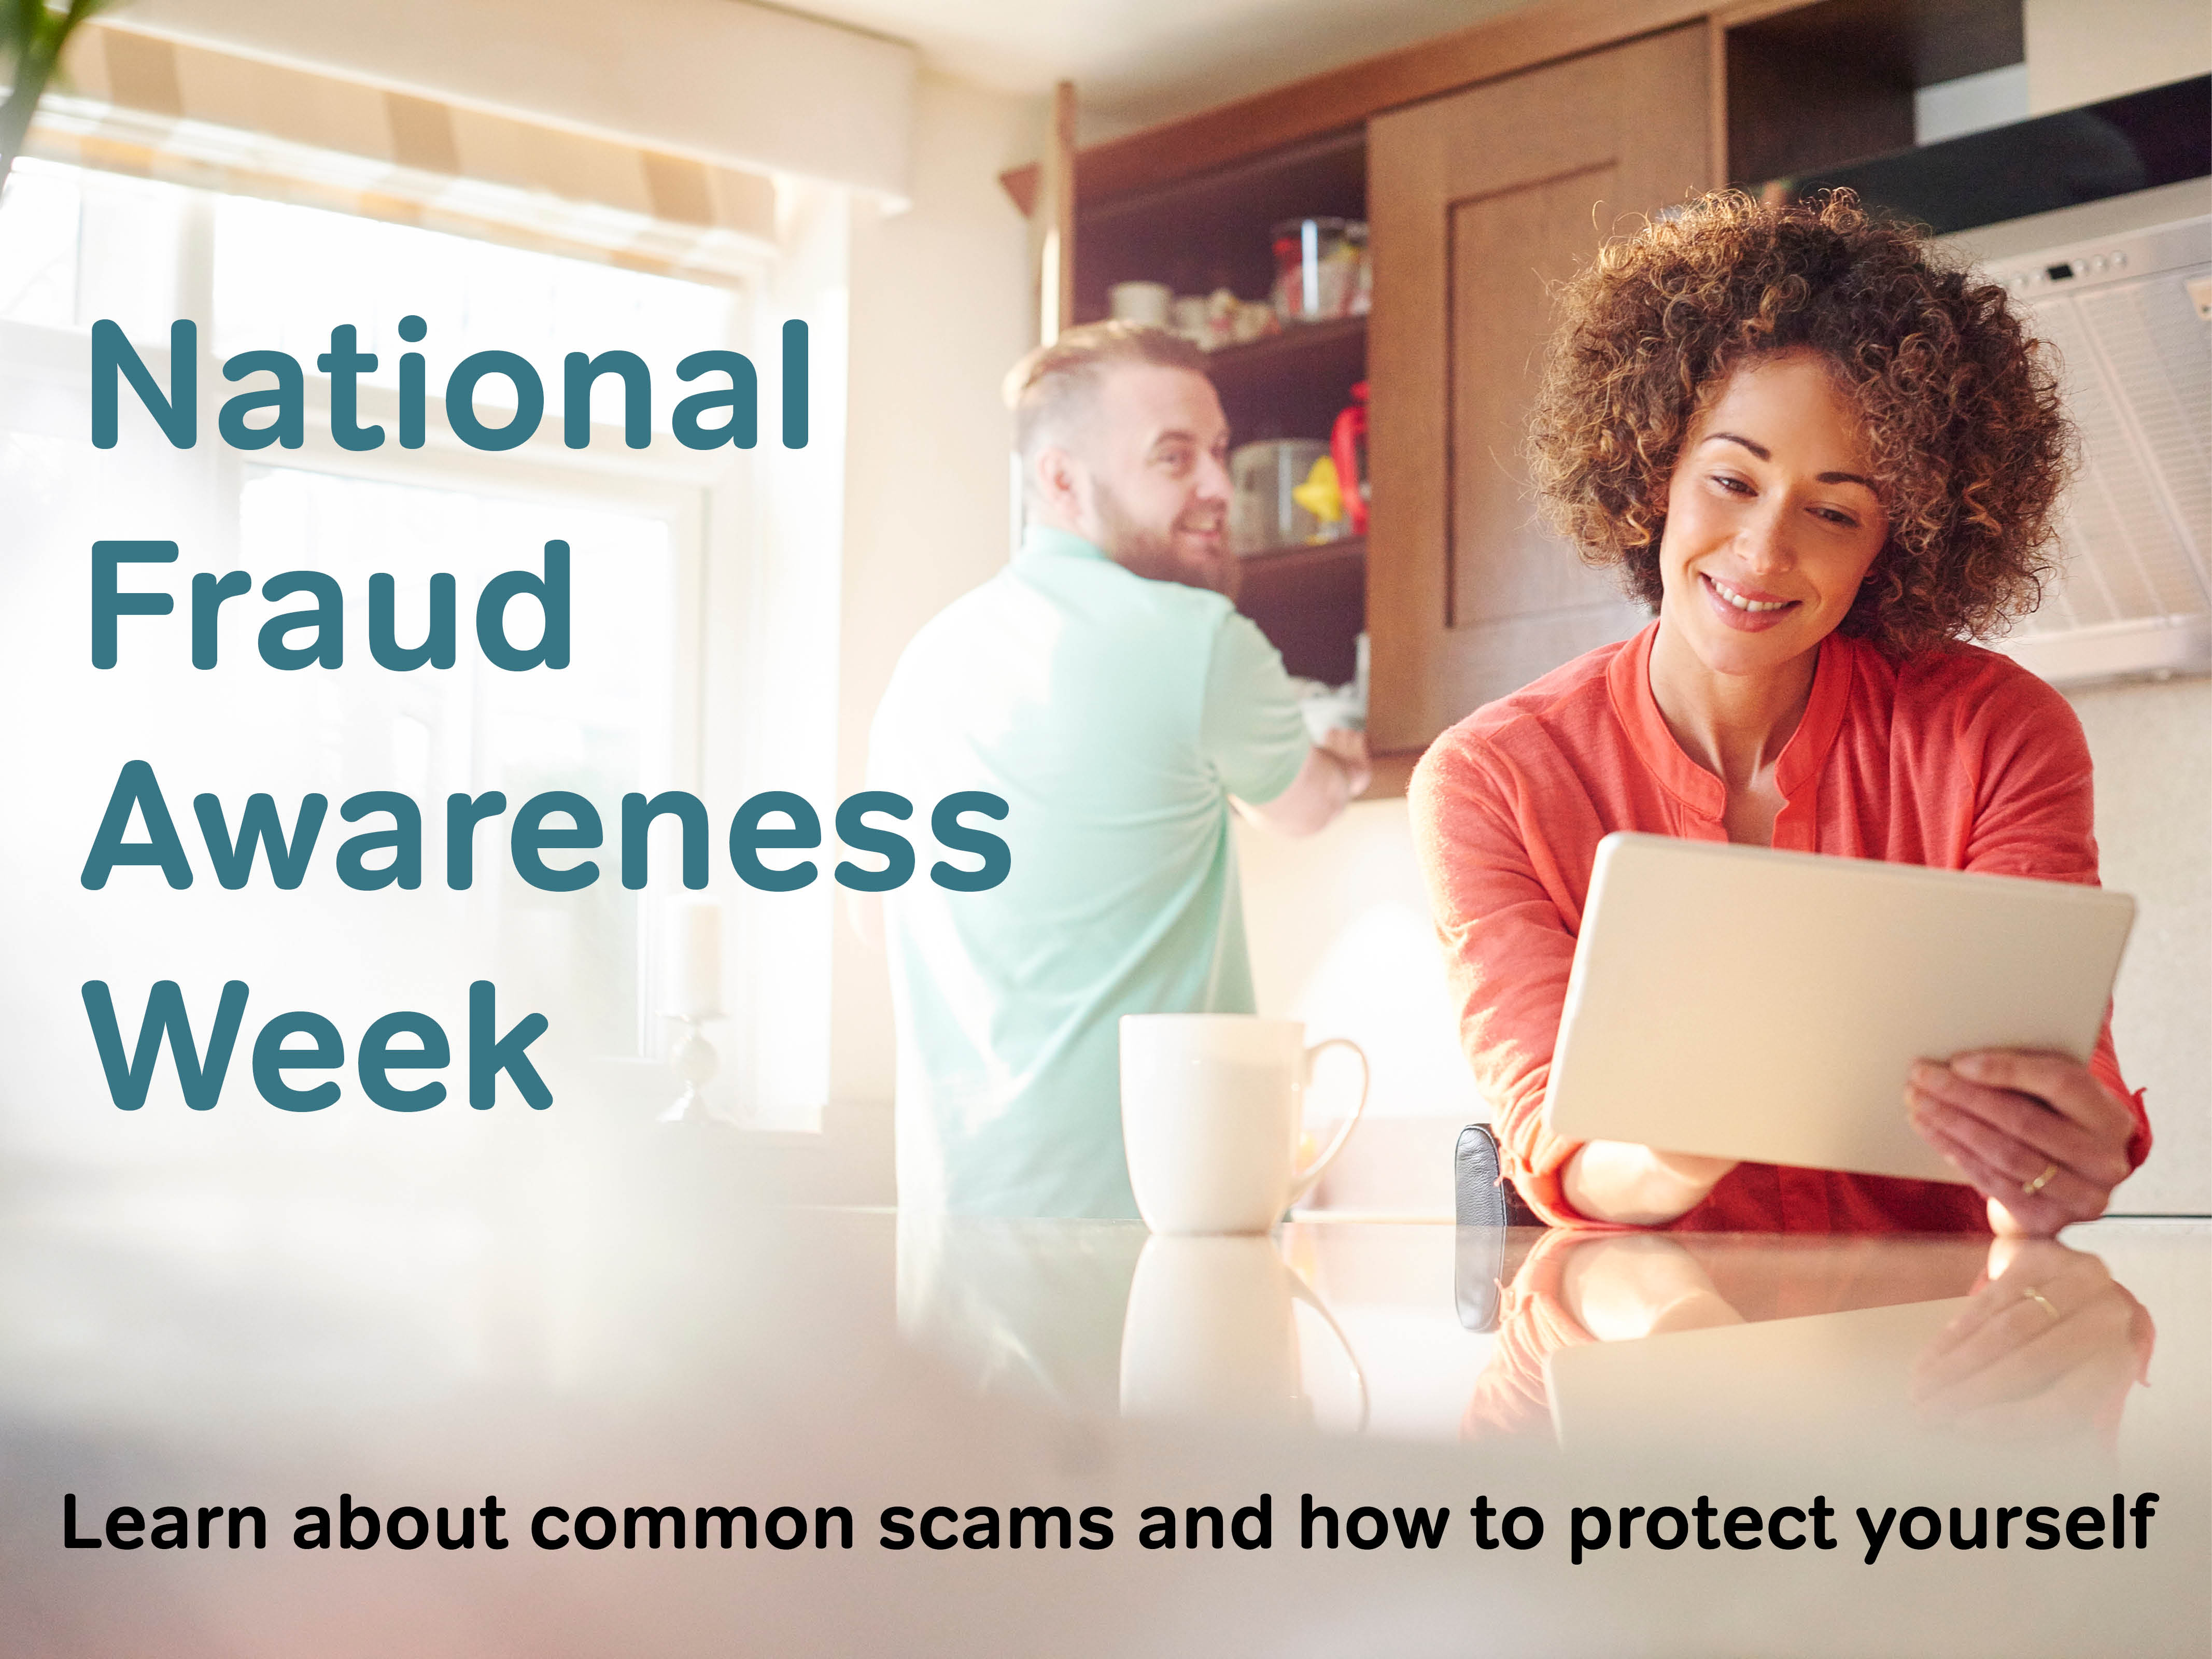 National Fraud Awareness Week